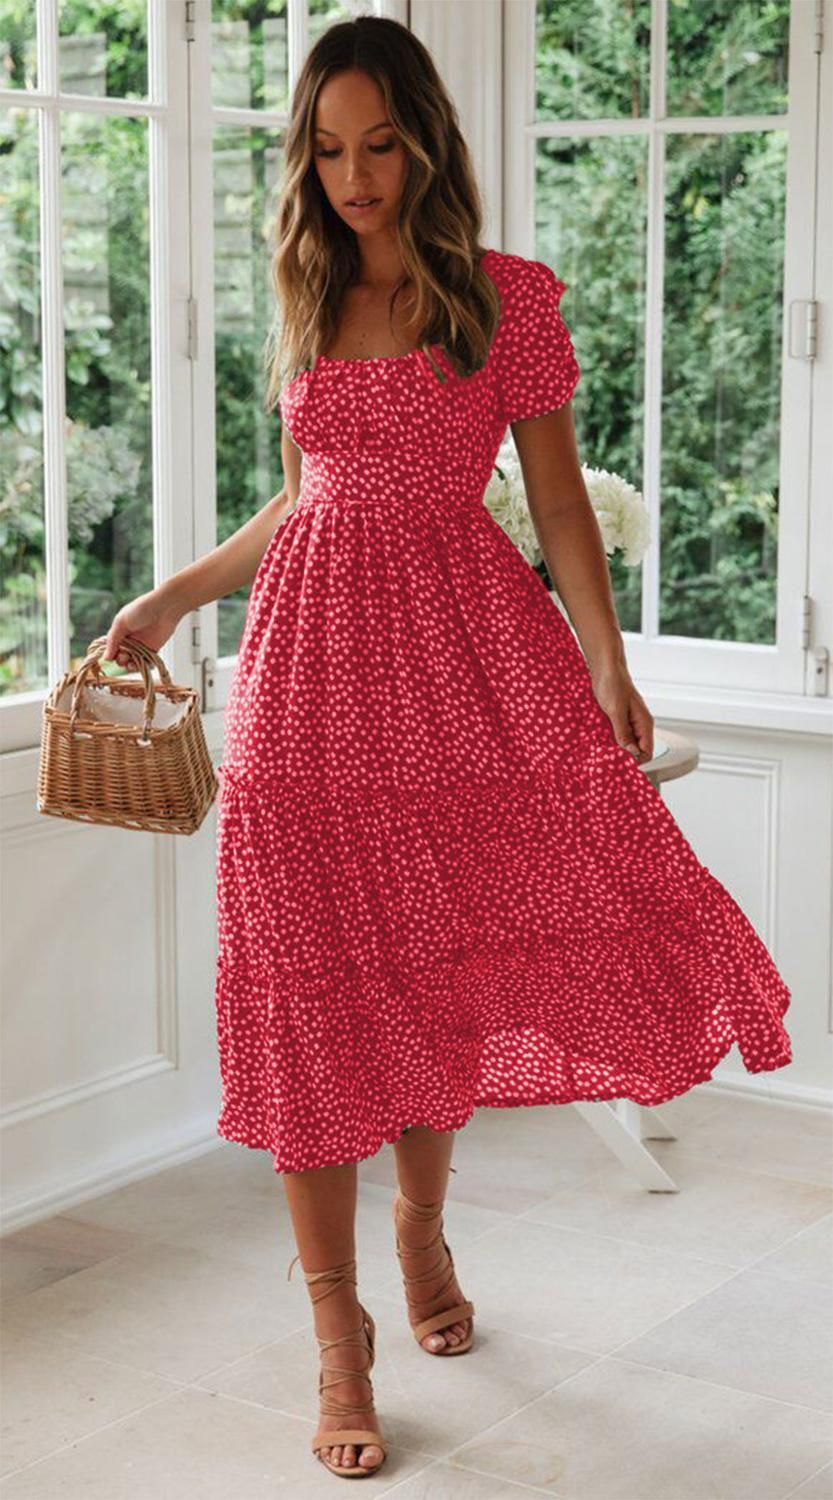 Vintage Print Puff Sleeve Summer Beach Sweet Dresses Casual Square Collar Floral Maxi Long Dress Festa Sweet Dresses Casual Long Dress Casual Summer Long Dress Casual [ 1500 x 833 Pixel ]